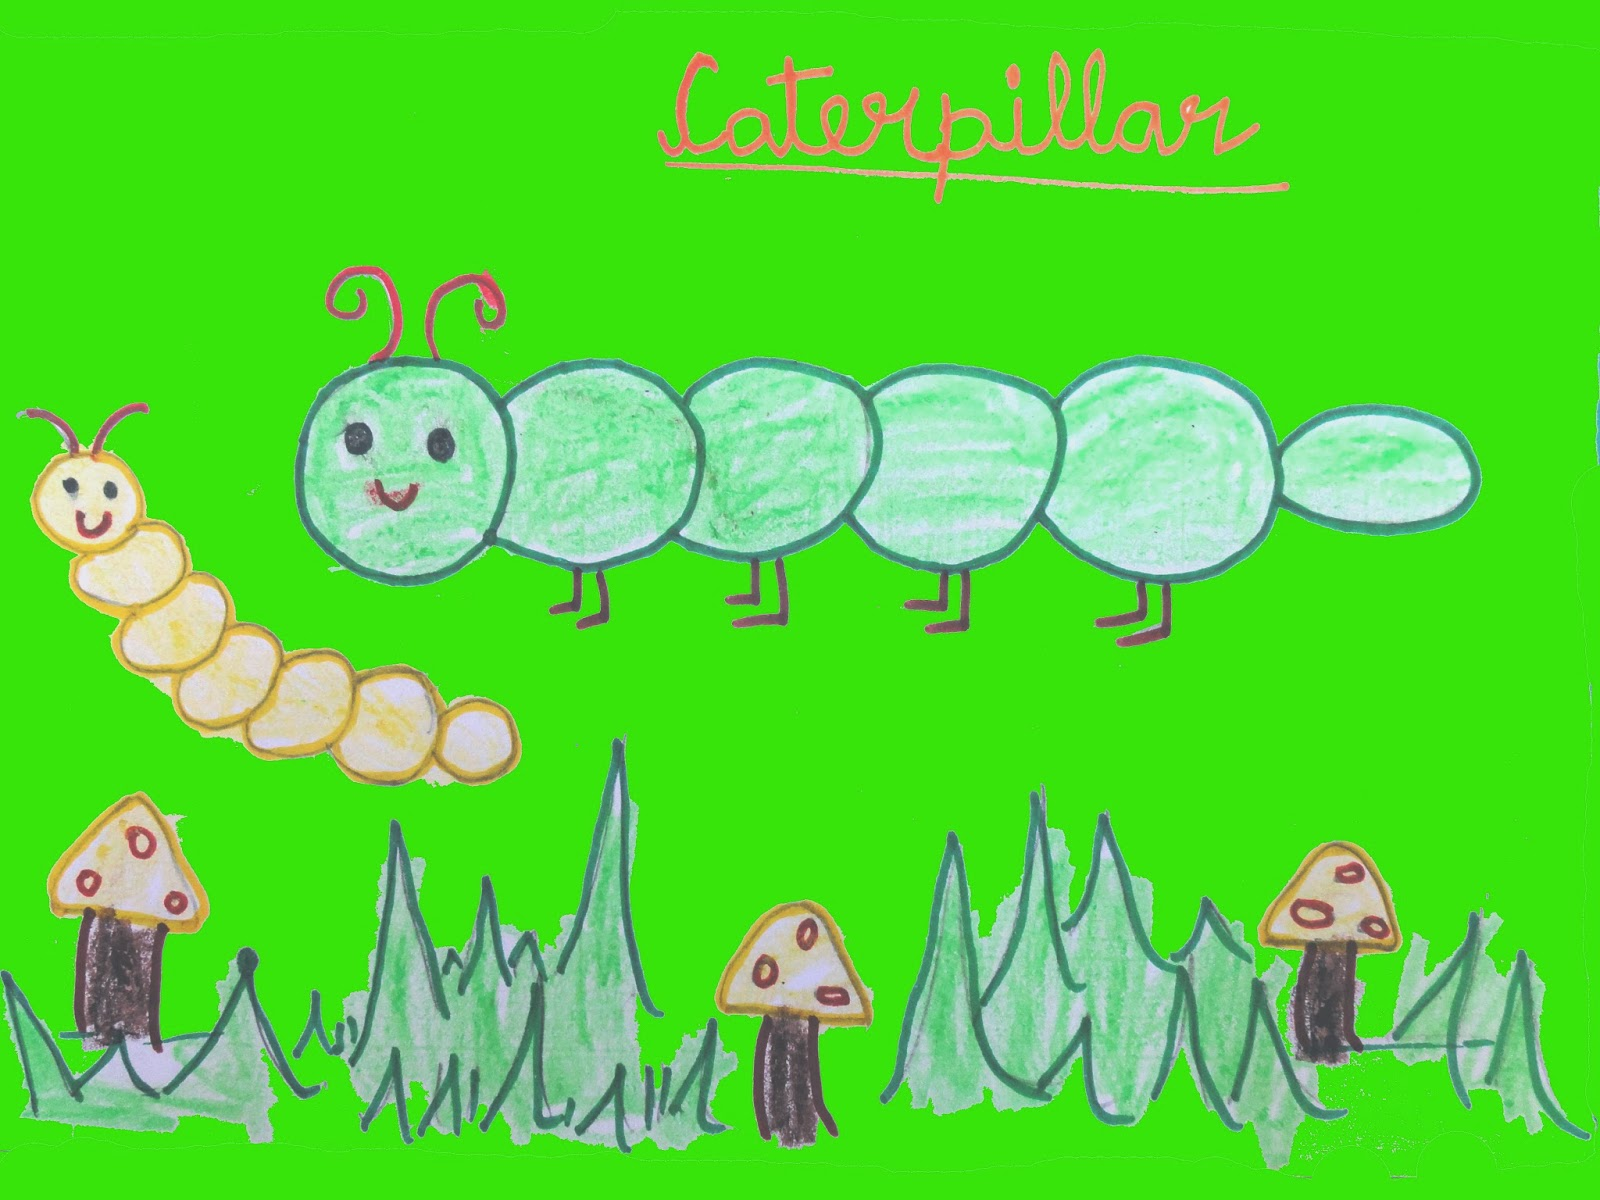 Caterpillar Drawing for Kids